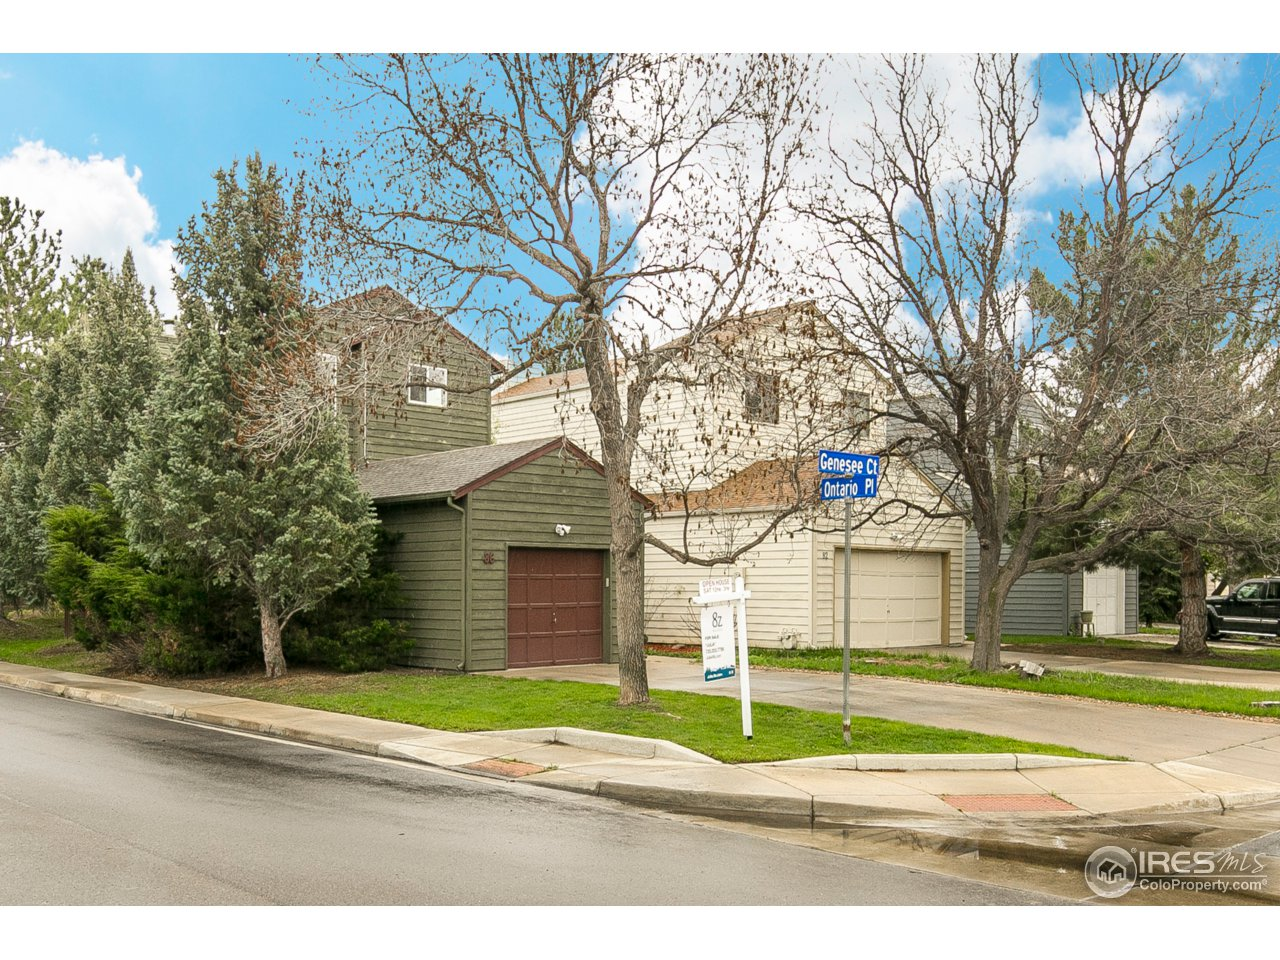 86 Genesee Ct, Boulder CO 80303